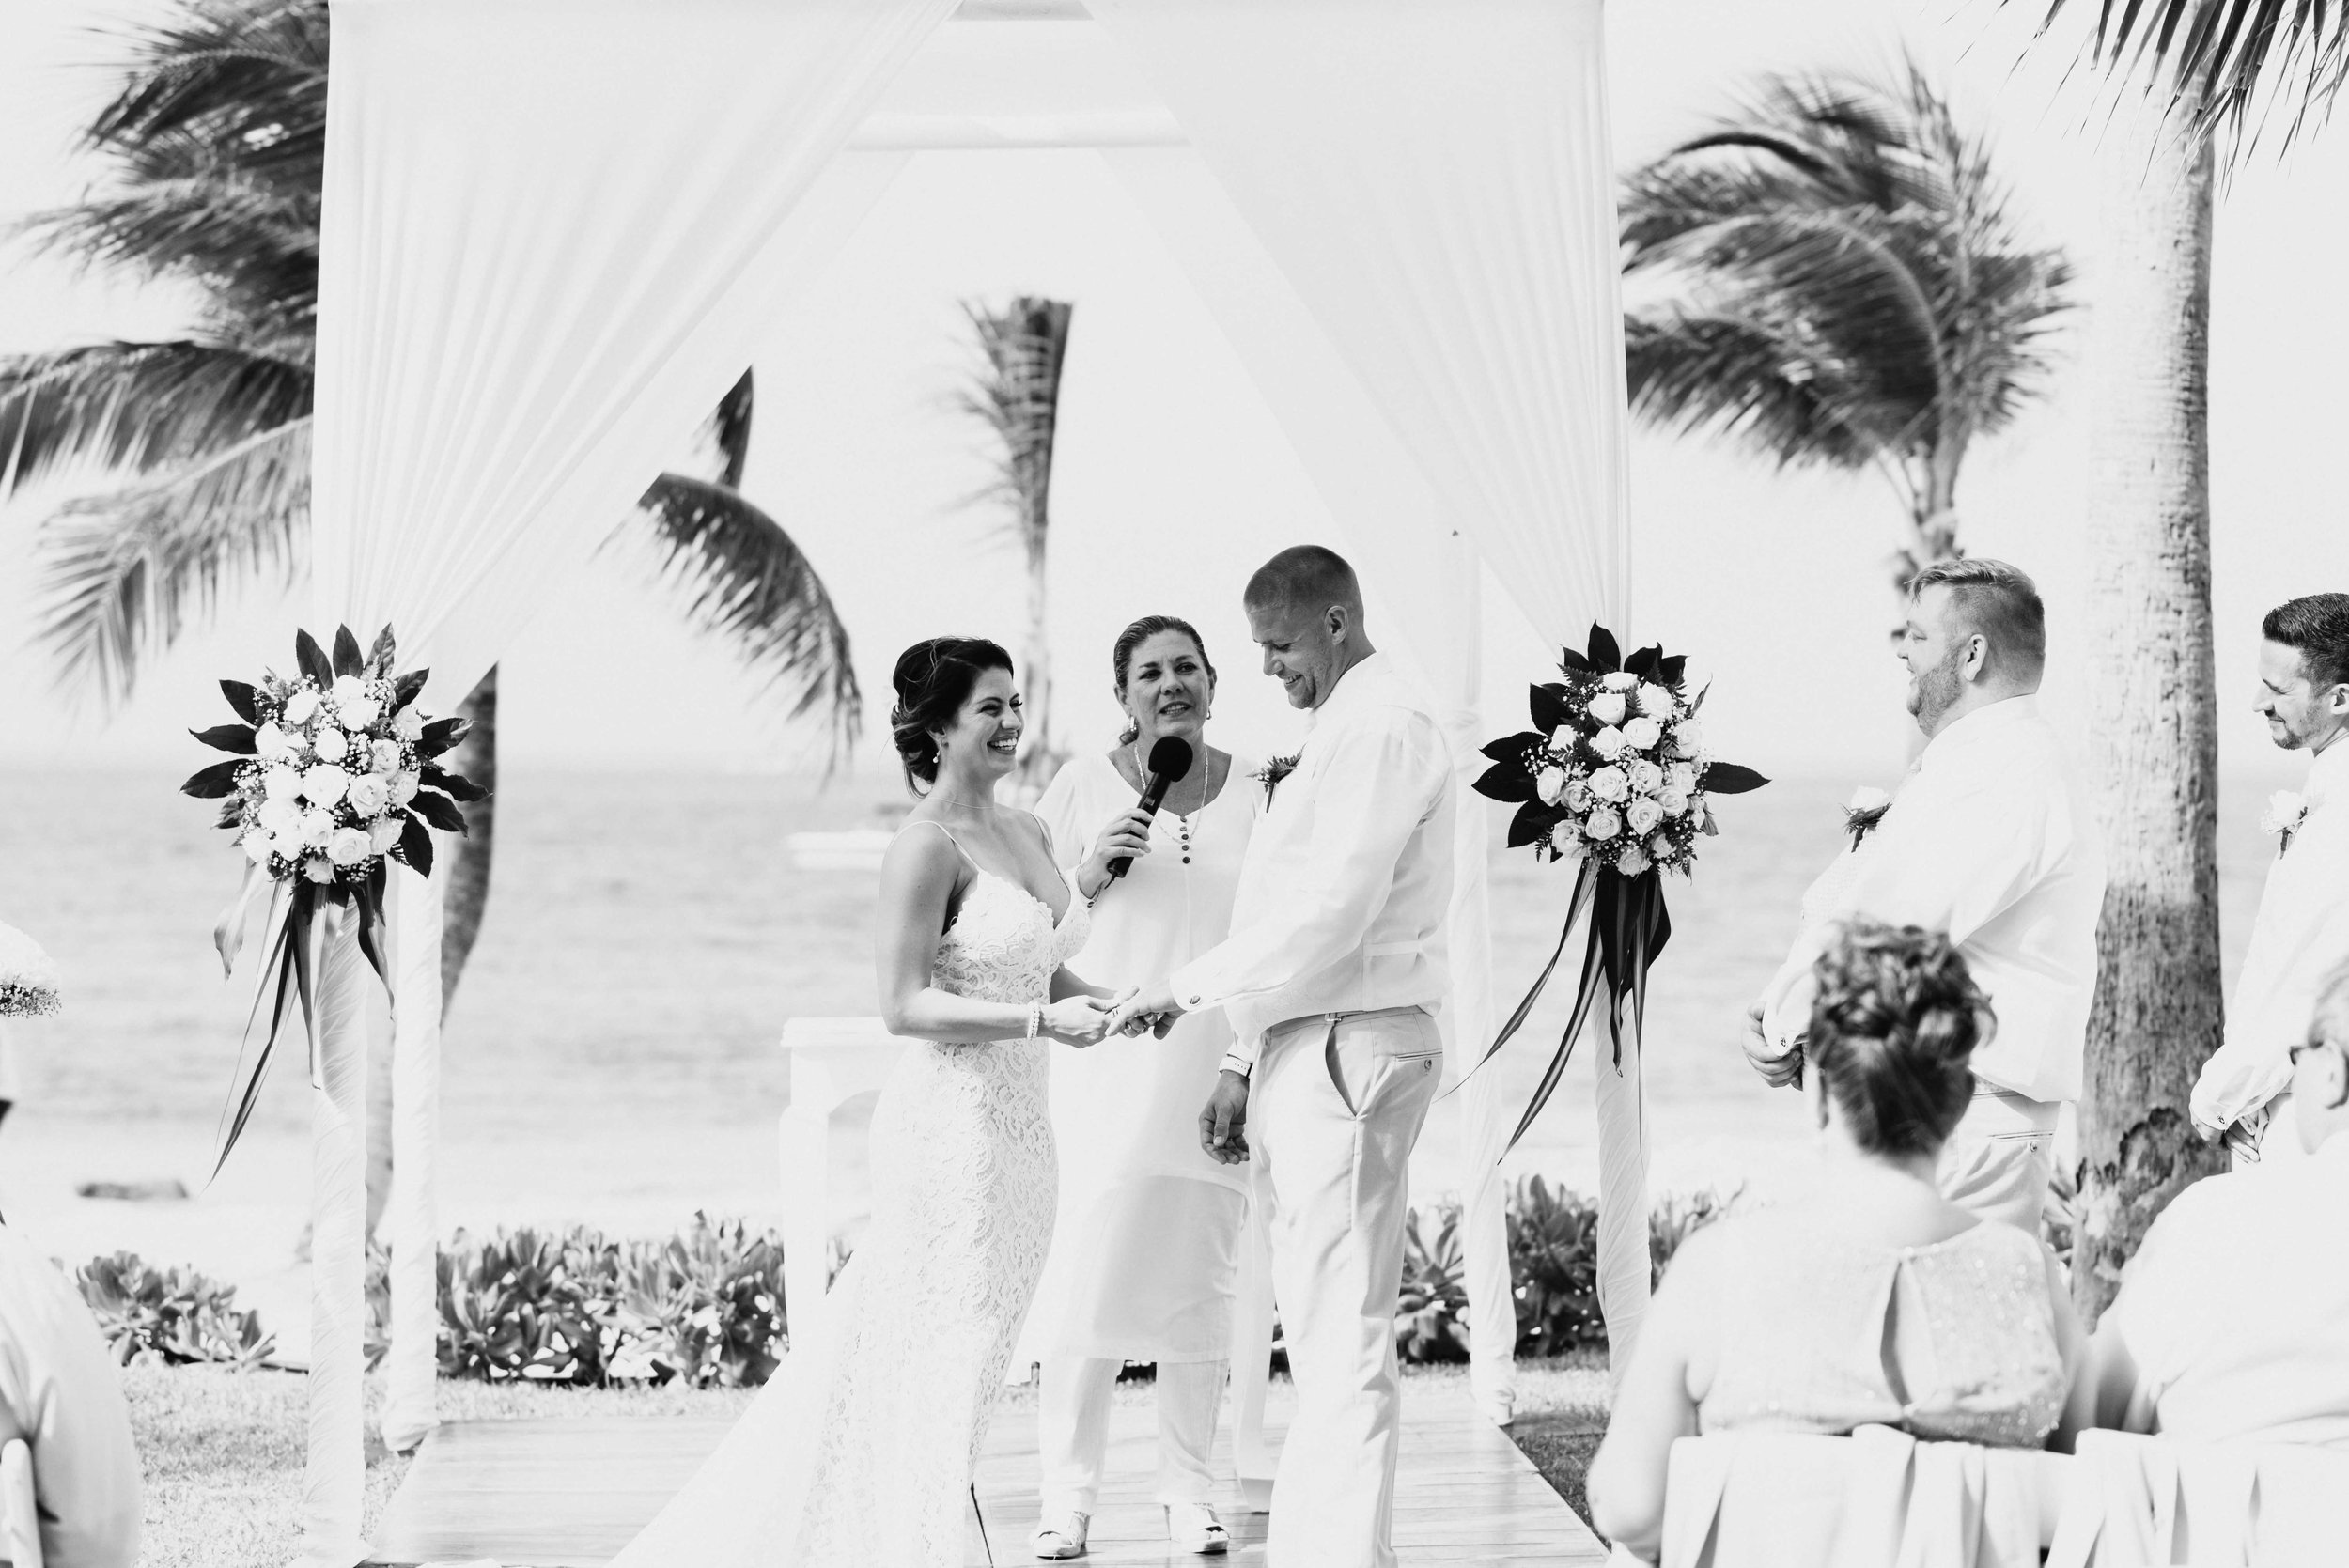 Beach-Wedding-Photography-Cancun-Elopement-Destination-Elopement-Photography-Destination-Beach-Wedding-+Costa-Rica-Wedding-Photography-Beach-Wedding-Photos-teresawoodhull-Cancun-Elopement-Beach-Wedding-+Sunset-Beach-Wedding-Fotografia-de-bodas-Nicoya-Peninsula-Elopement-Photographer-Santa-Teresa-Elopement-Photographer-Adventure-elopement-photographer-Santa-Teresa-Wedding-Photographer-Adventure-Wedding-Boda-playa-santa-teresa-Adventure-Wedding-Photography-Adventure-Wedding-Photographer-Beach-Elopement-Beach-Elopement-Photos-maddie-mae-Beach-Elopement-Photographer-Destination-Elopement-Photographer-Sunset-Beach-Elopement-Mexico-wedding-photographer-cabo-wedding-photographer-mexico-wedding-mexico-destination-wedding-cancun-destination-wedding-cancun-elopement-photographer-playa-del-carmen-wedding-playa-del-carmen-destination-wedding-photographer-playa-del-carmen-wedding-photography-Nicoya-Peninsula-Wedding-Photography-Nicoya-Peninsula-Wedding-Photographer-Nicoya-Peninsula-Elopement-Photography-beach-destination-wedding-beach-ceremony-riu-ceremony-cancun-tony-julia